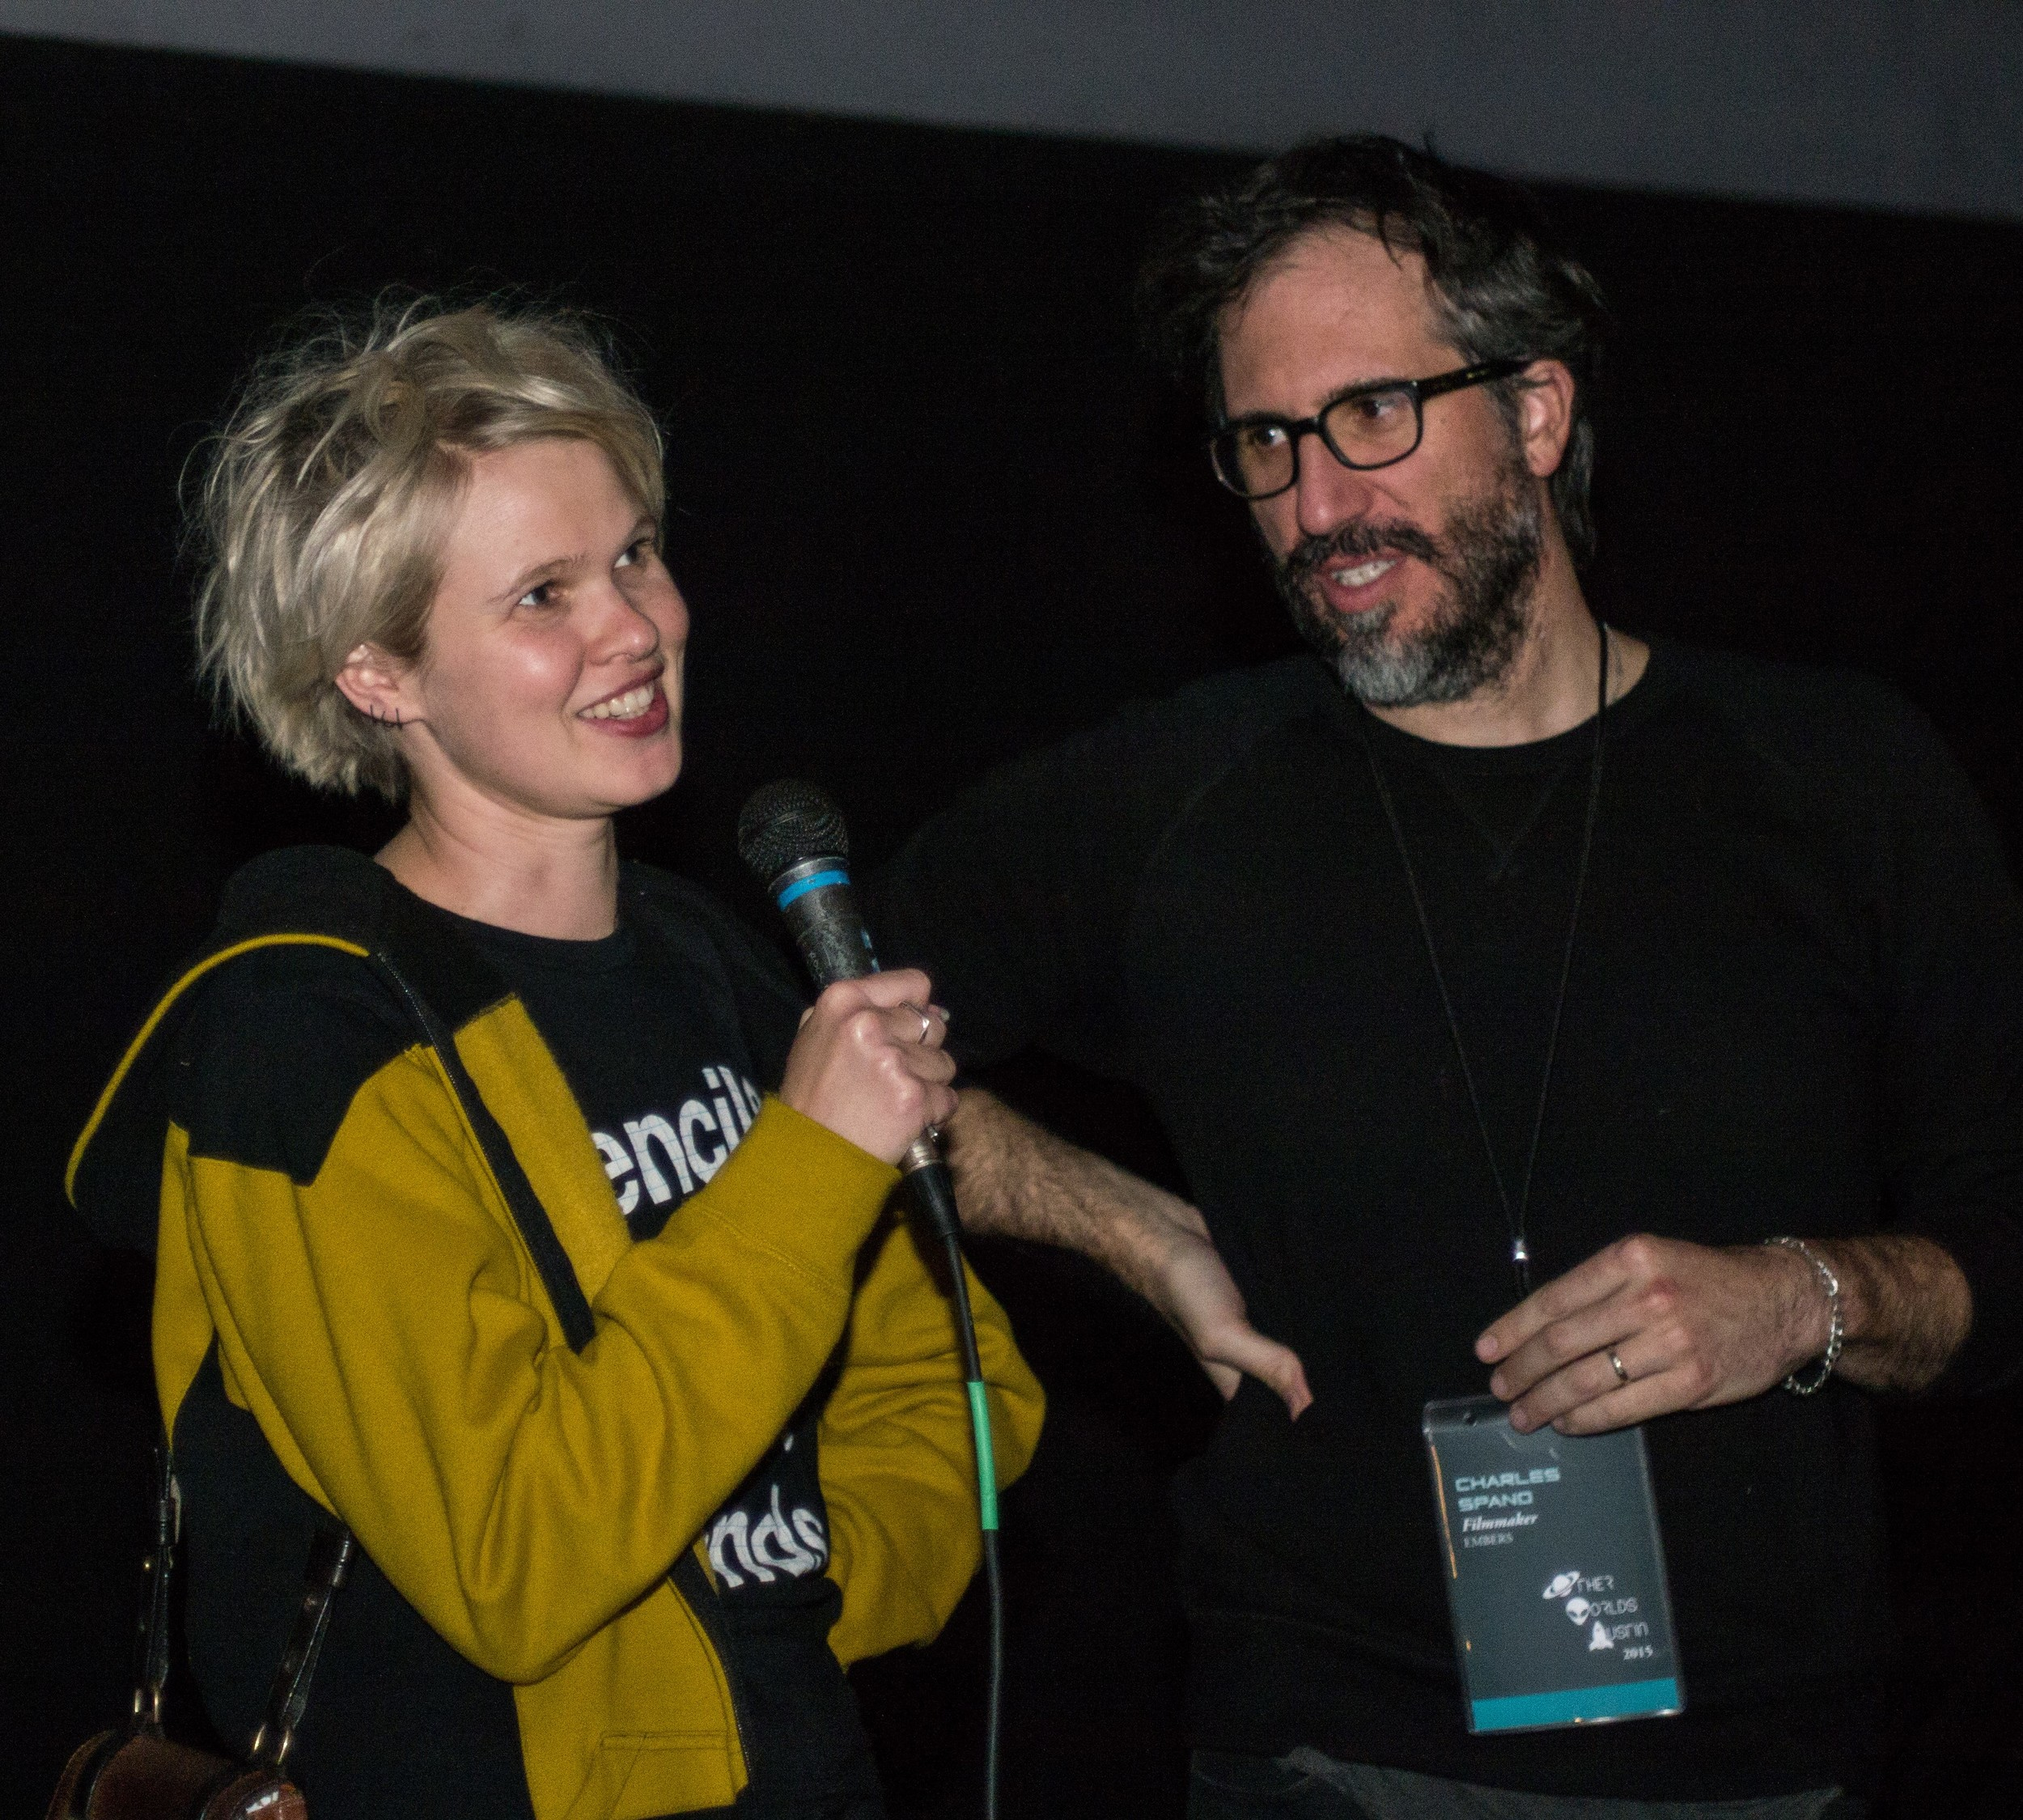 Claire & Charles chatting with the Other Worlds Austin audience during the EMBERS Q&A